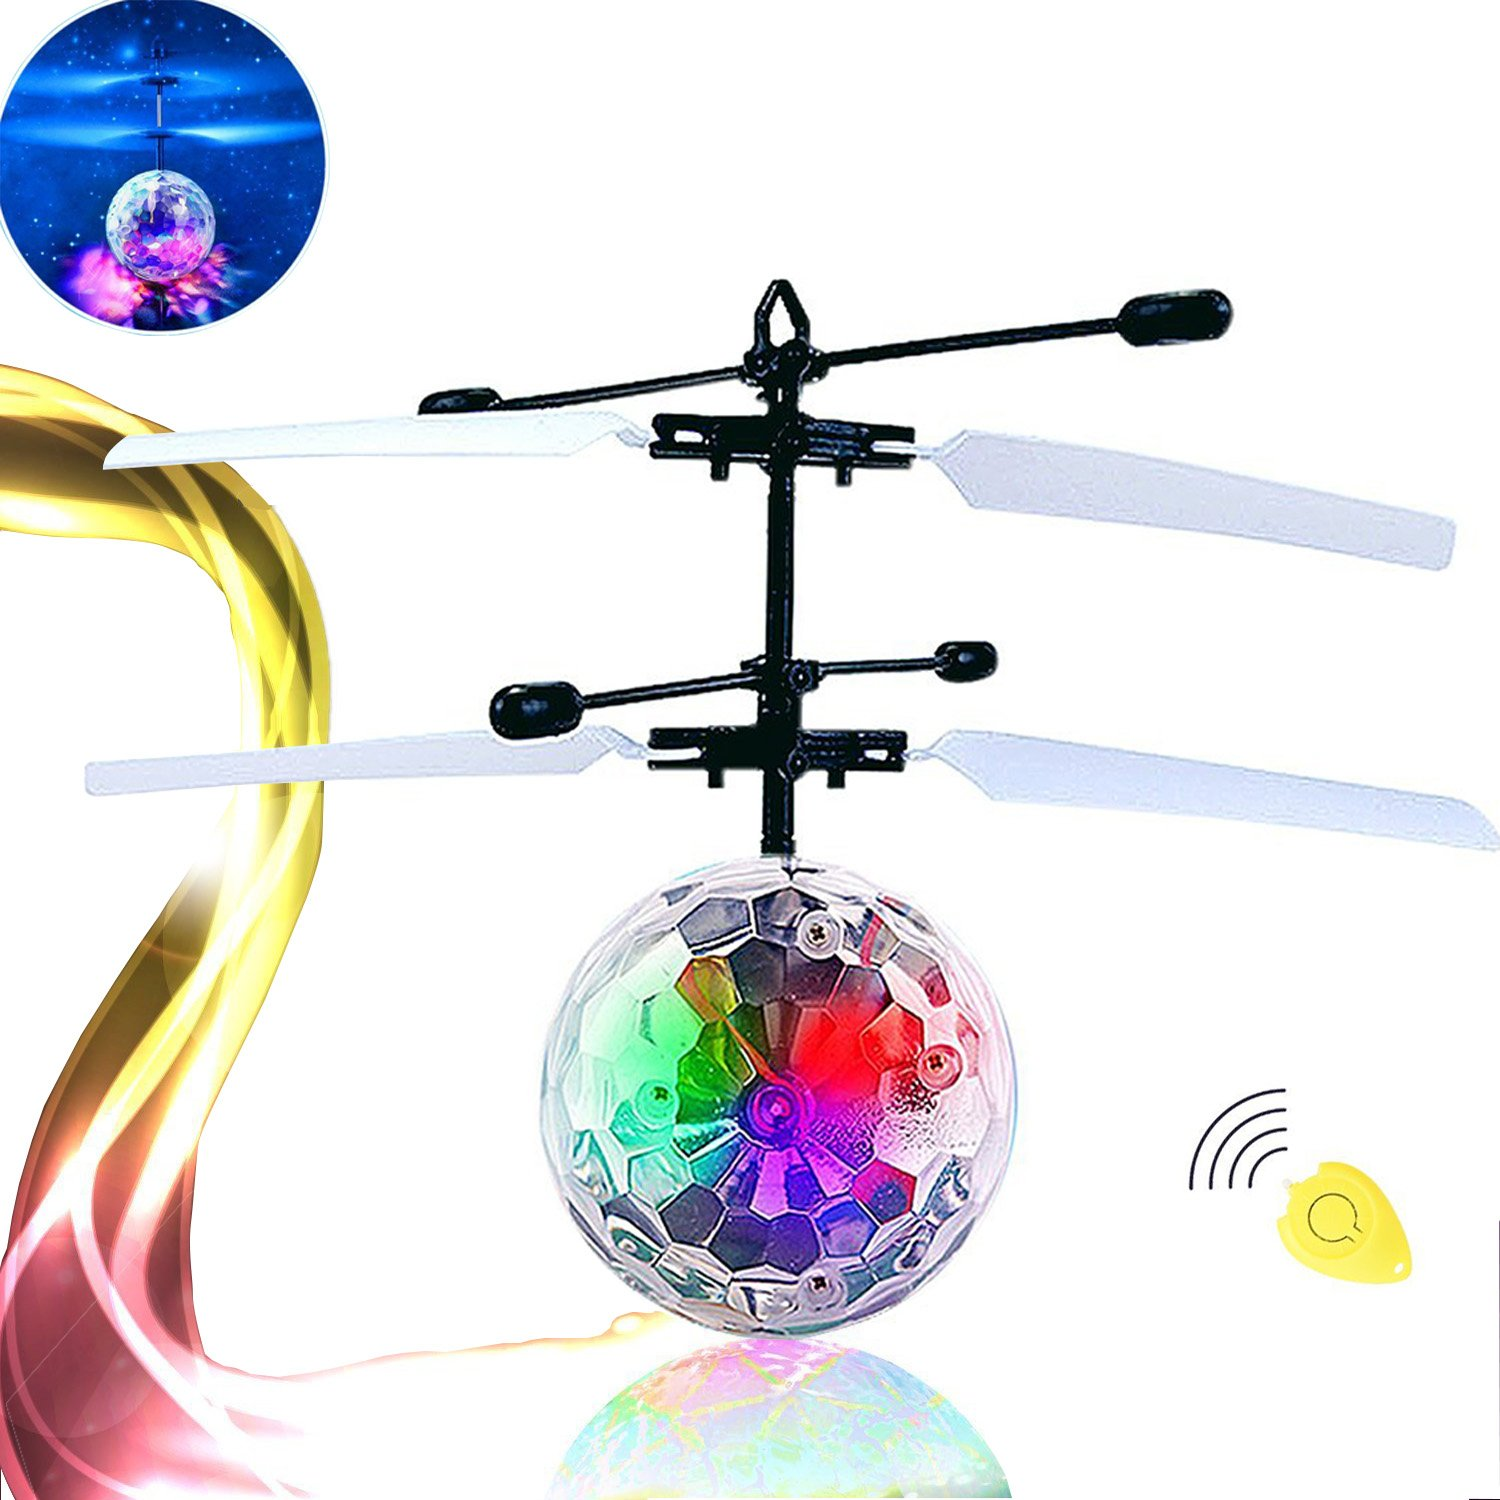 PlayEgg Kid RC Toy, RC Flying Ball, Hand Suspension Helicopter Ball toy,Built-in Shinning LED Lighting for Kids, Teenagers